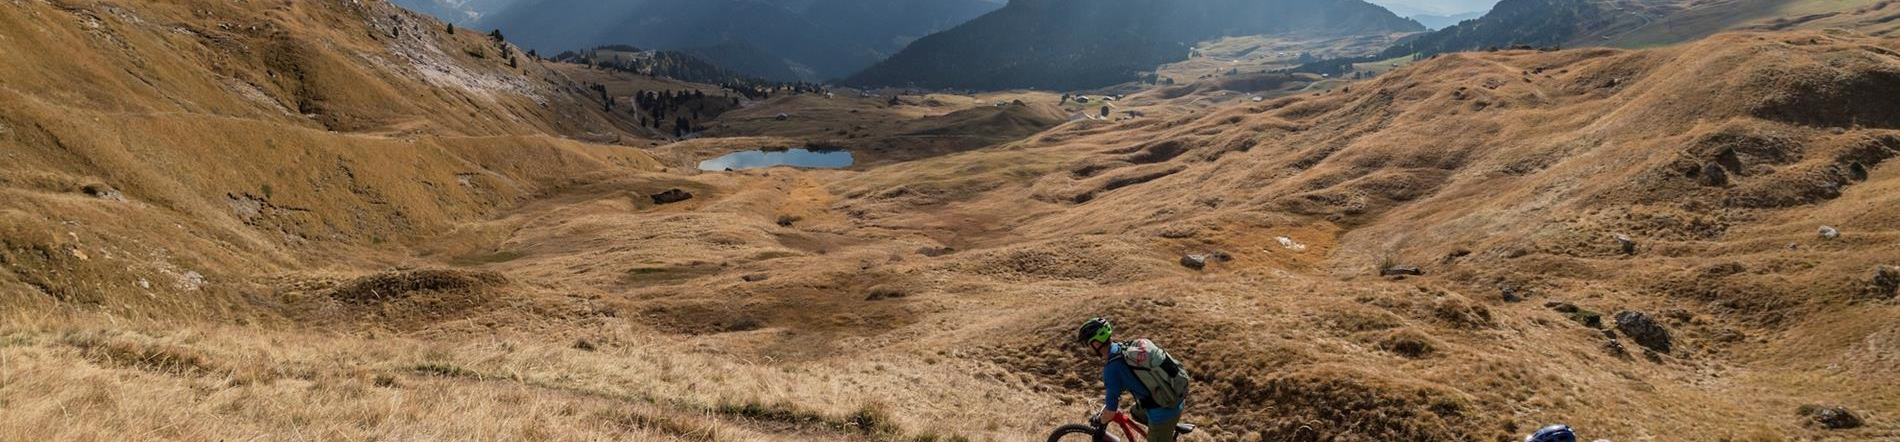 alpenheim-bike-photo-by-georg-vinatzer-05